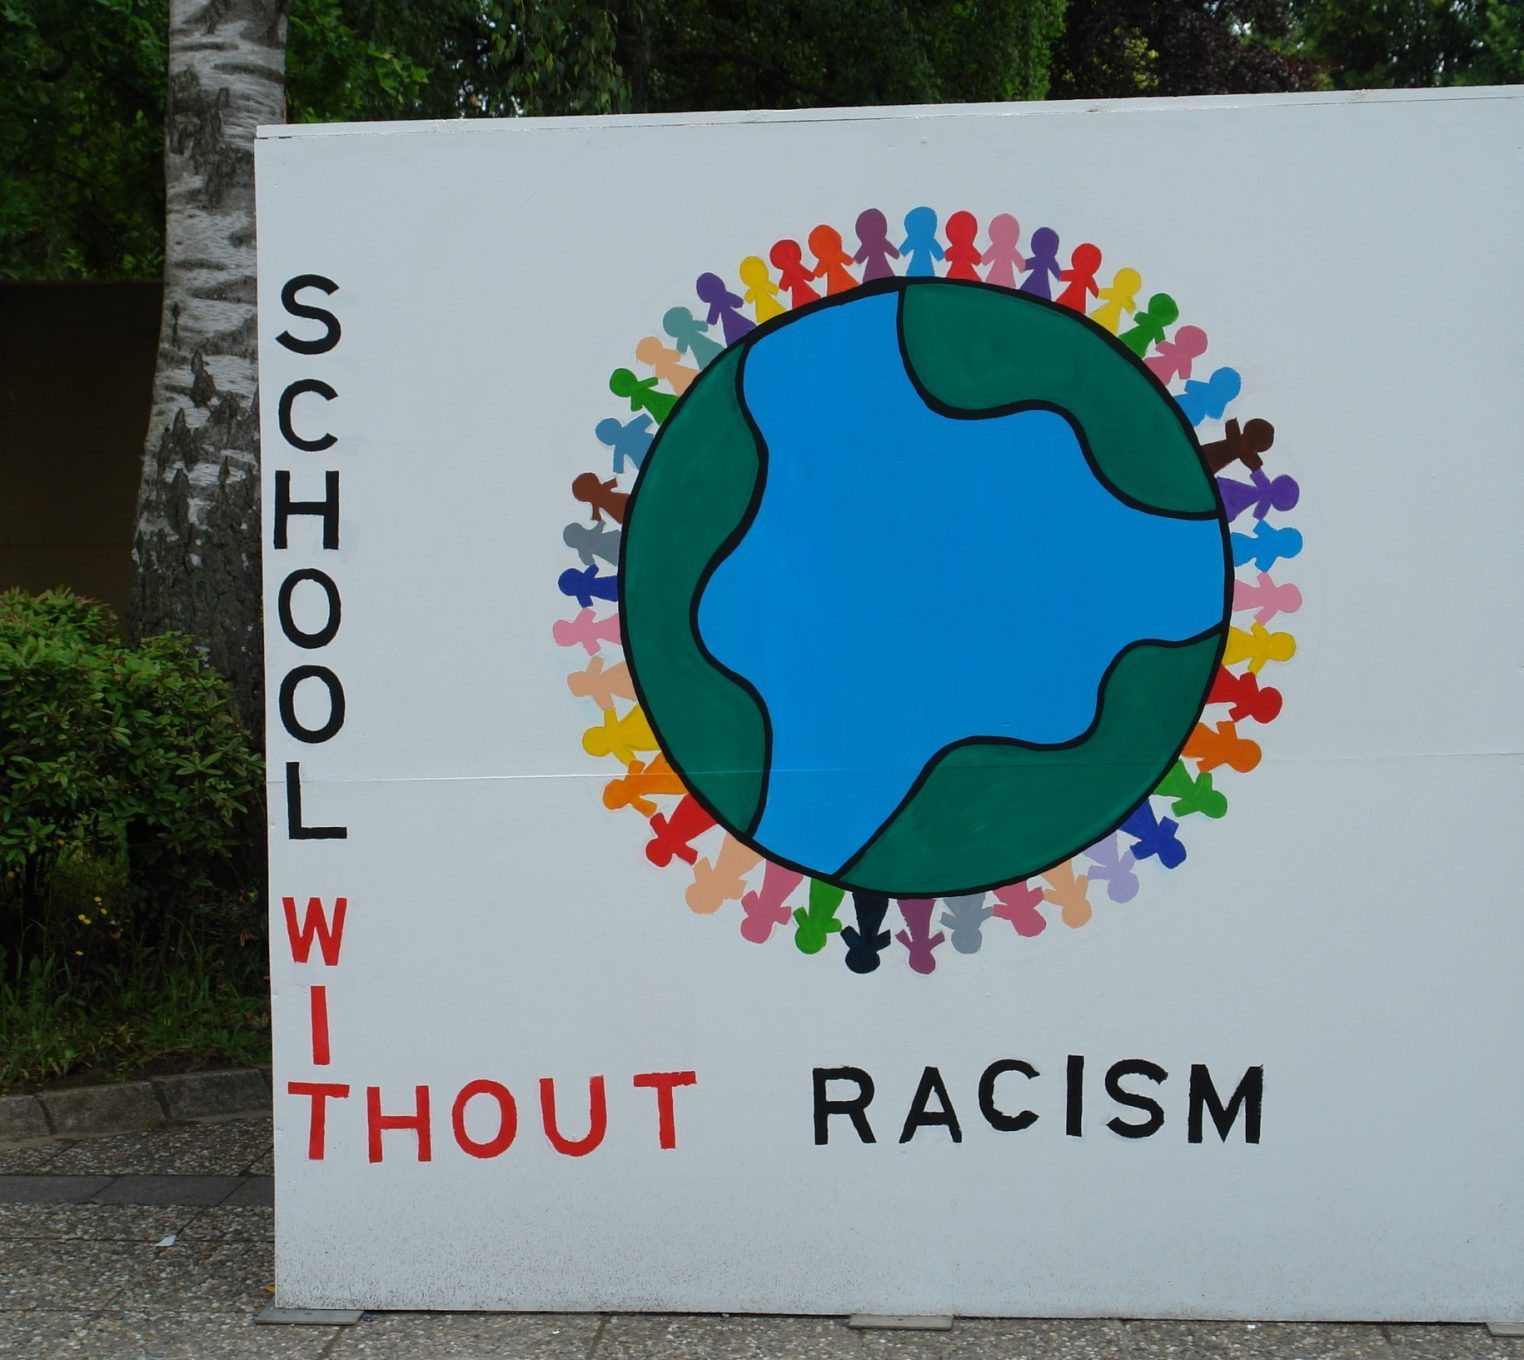 School without racism - Talent week July 2013